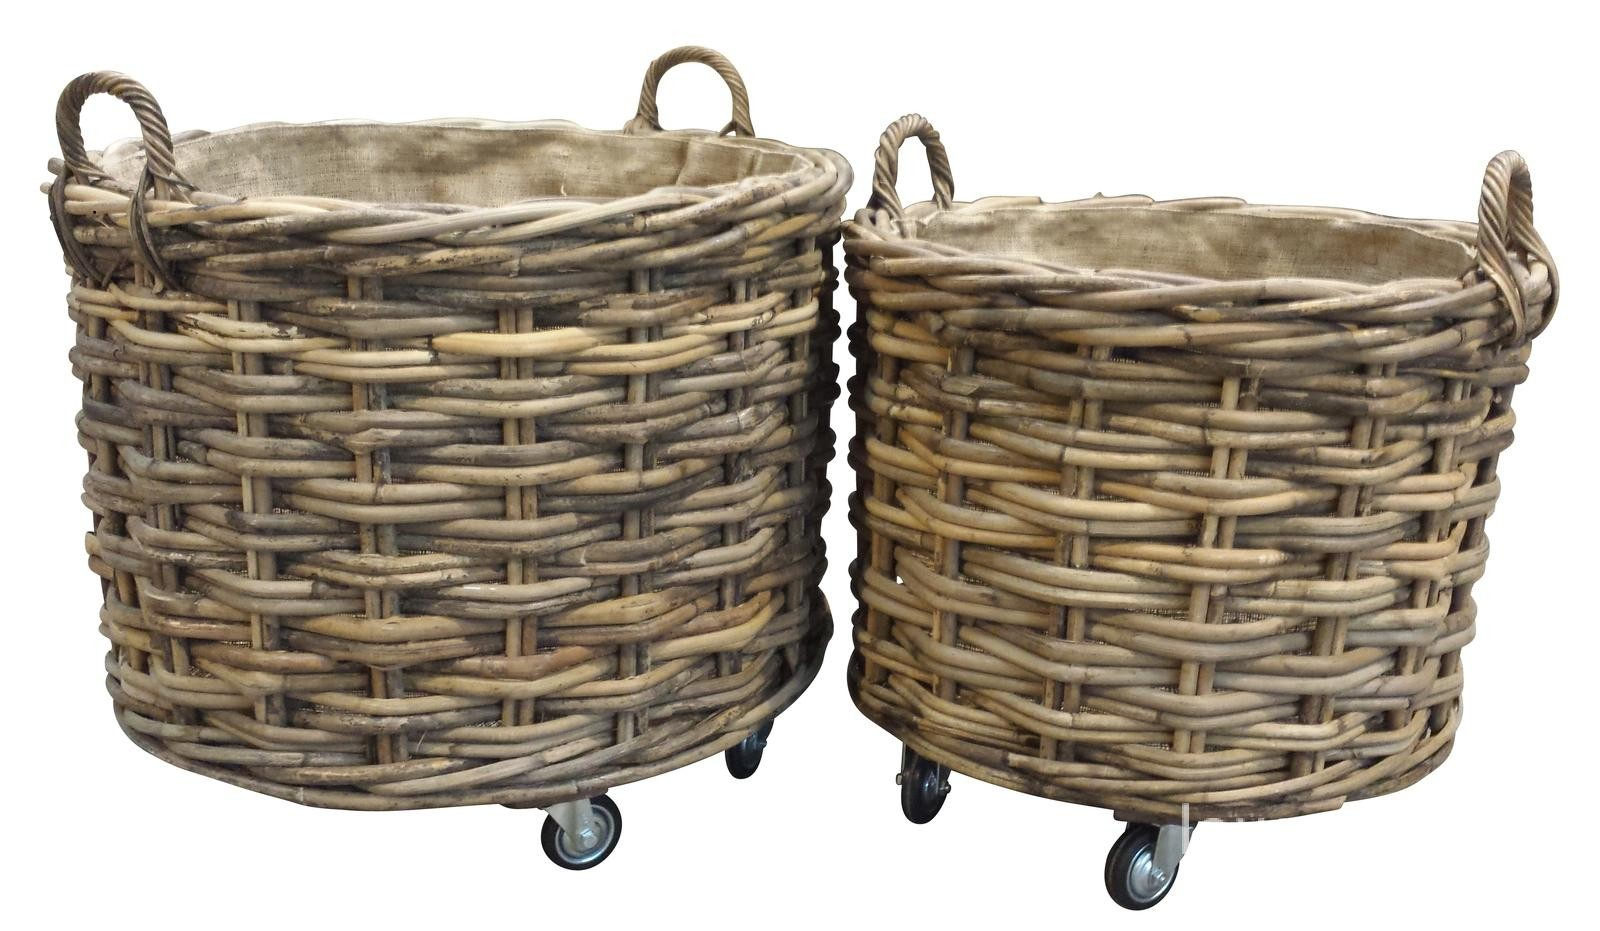 Large Amp Small Square Log Baskets On Wheels A Perfect